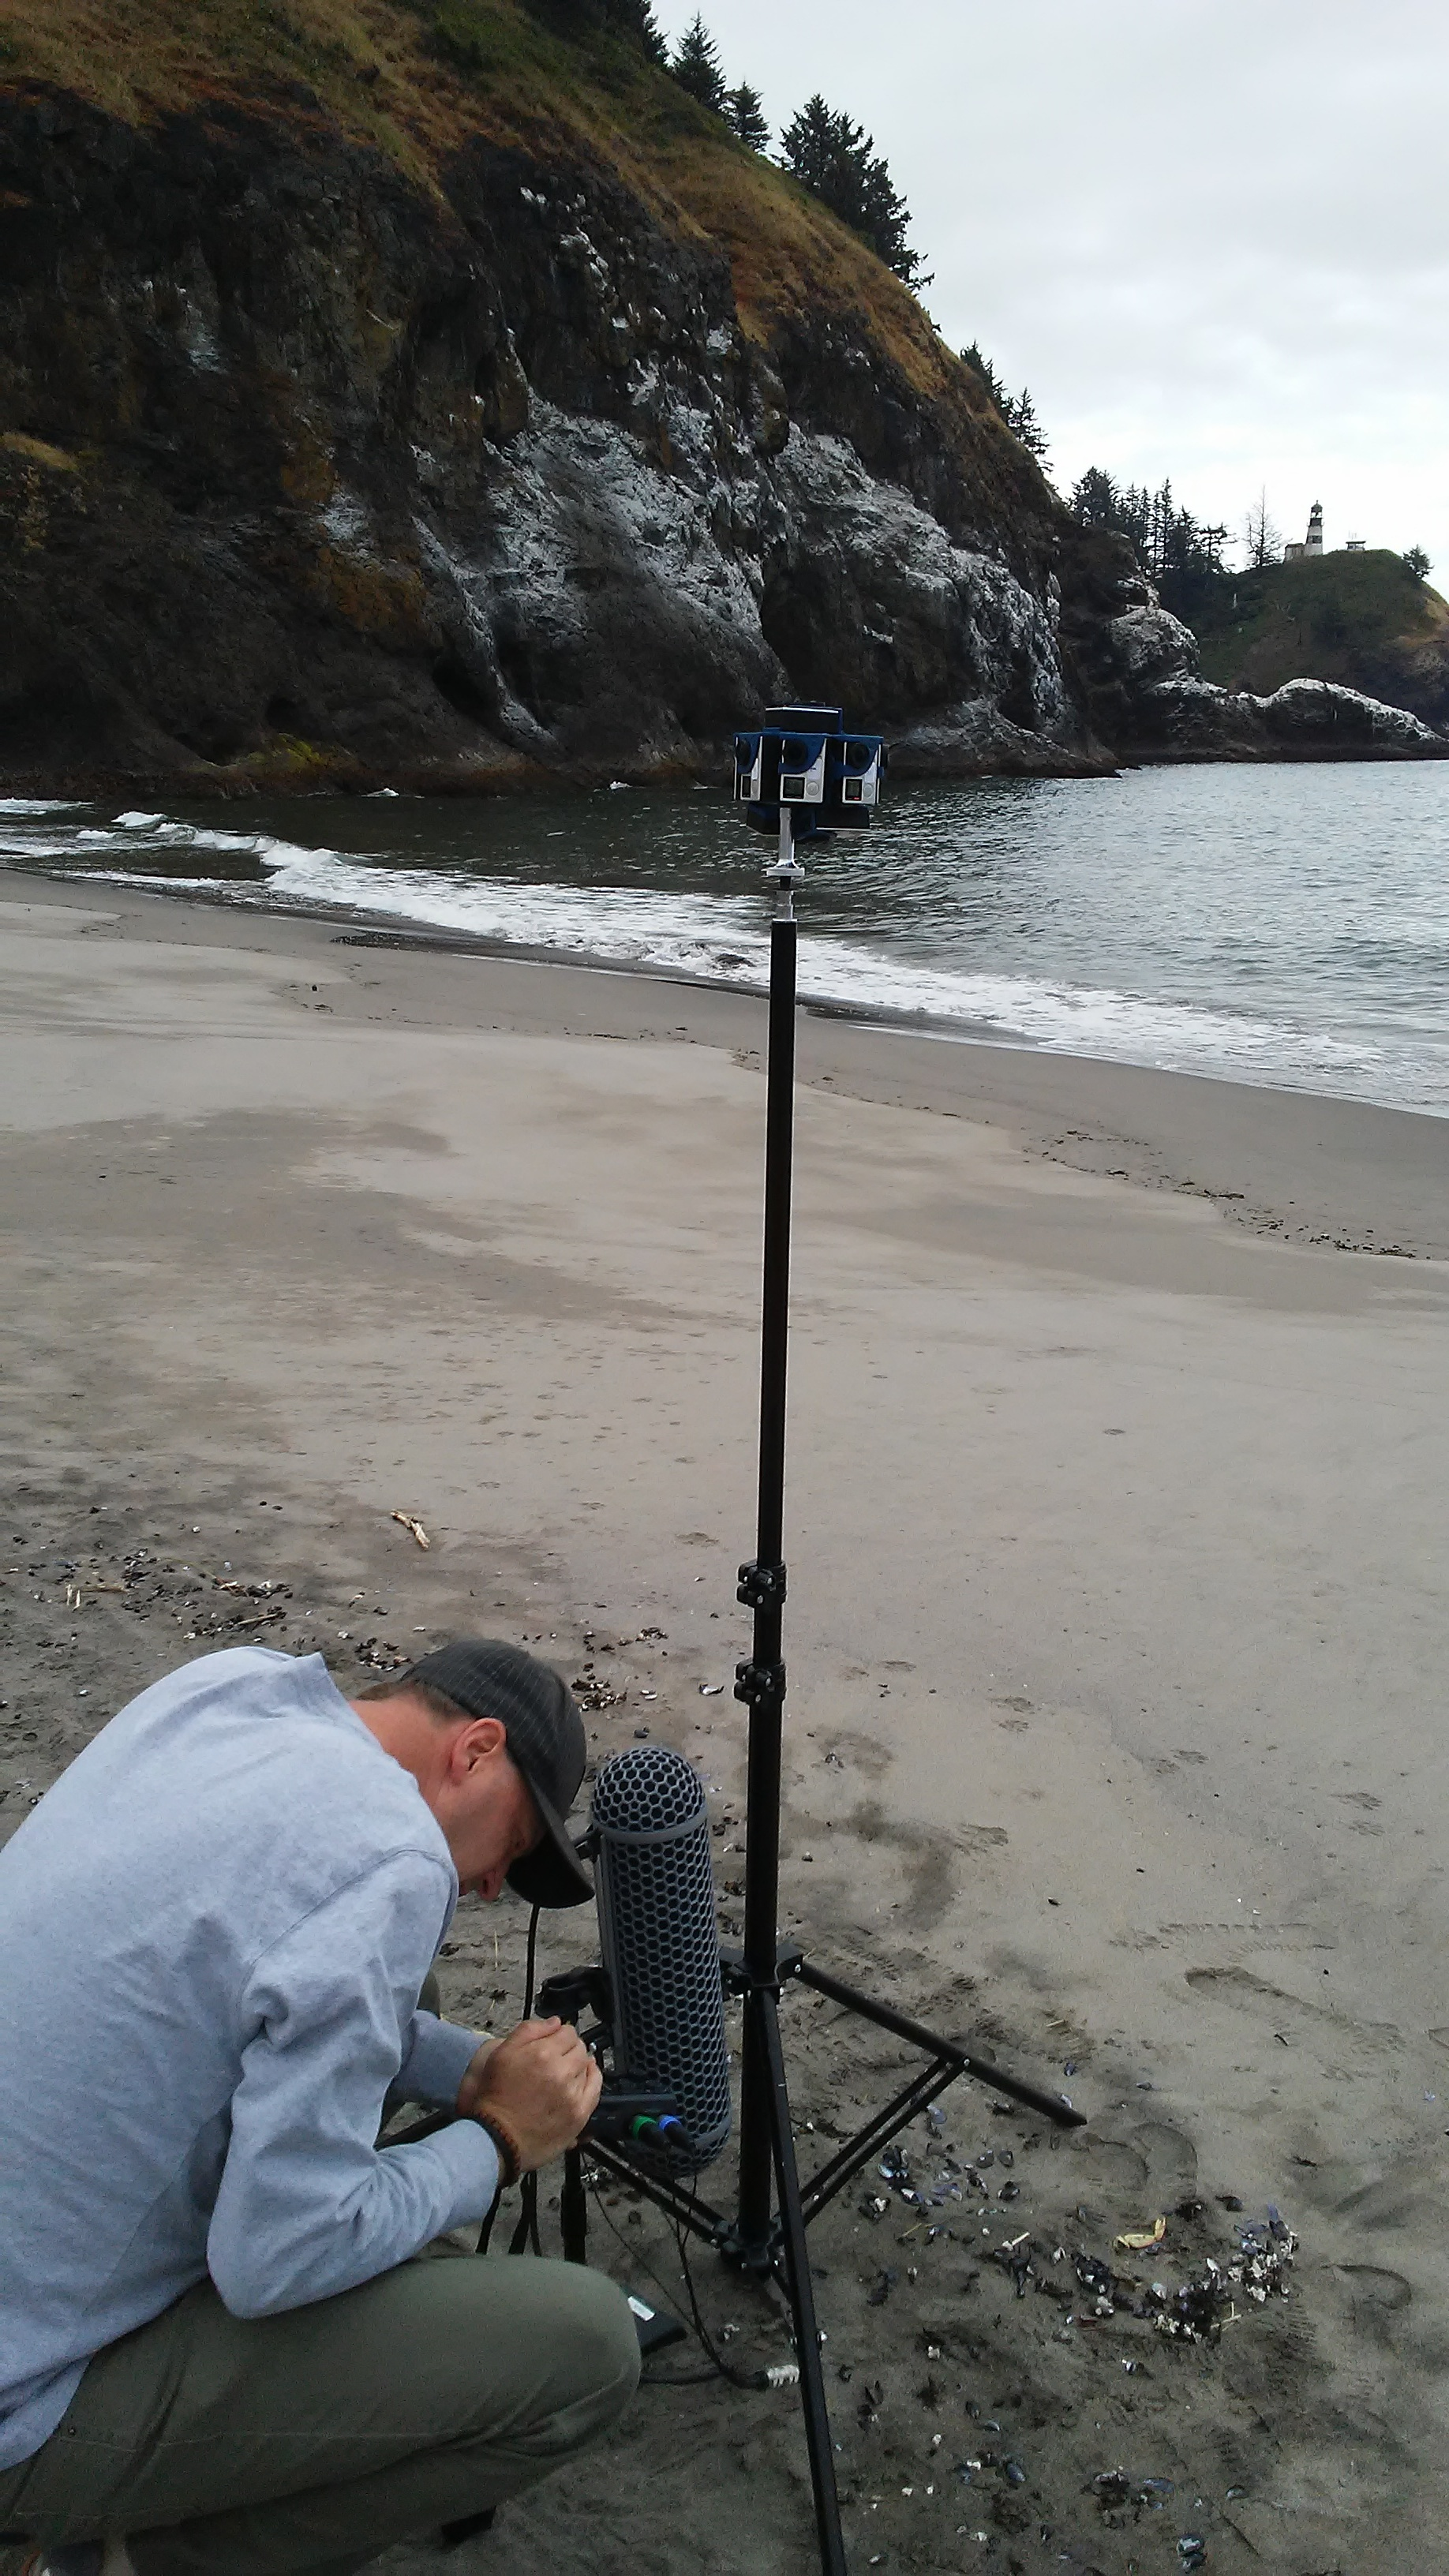 Ambisonic audio on the beach